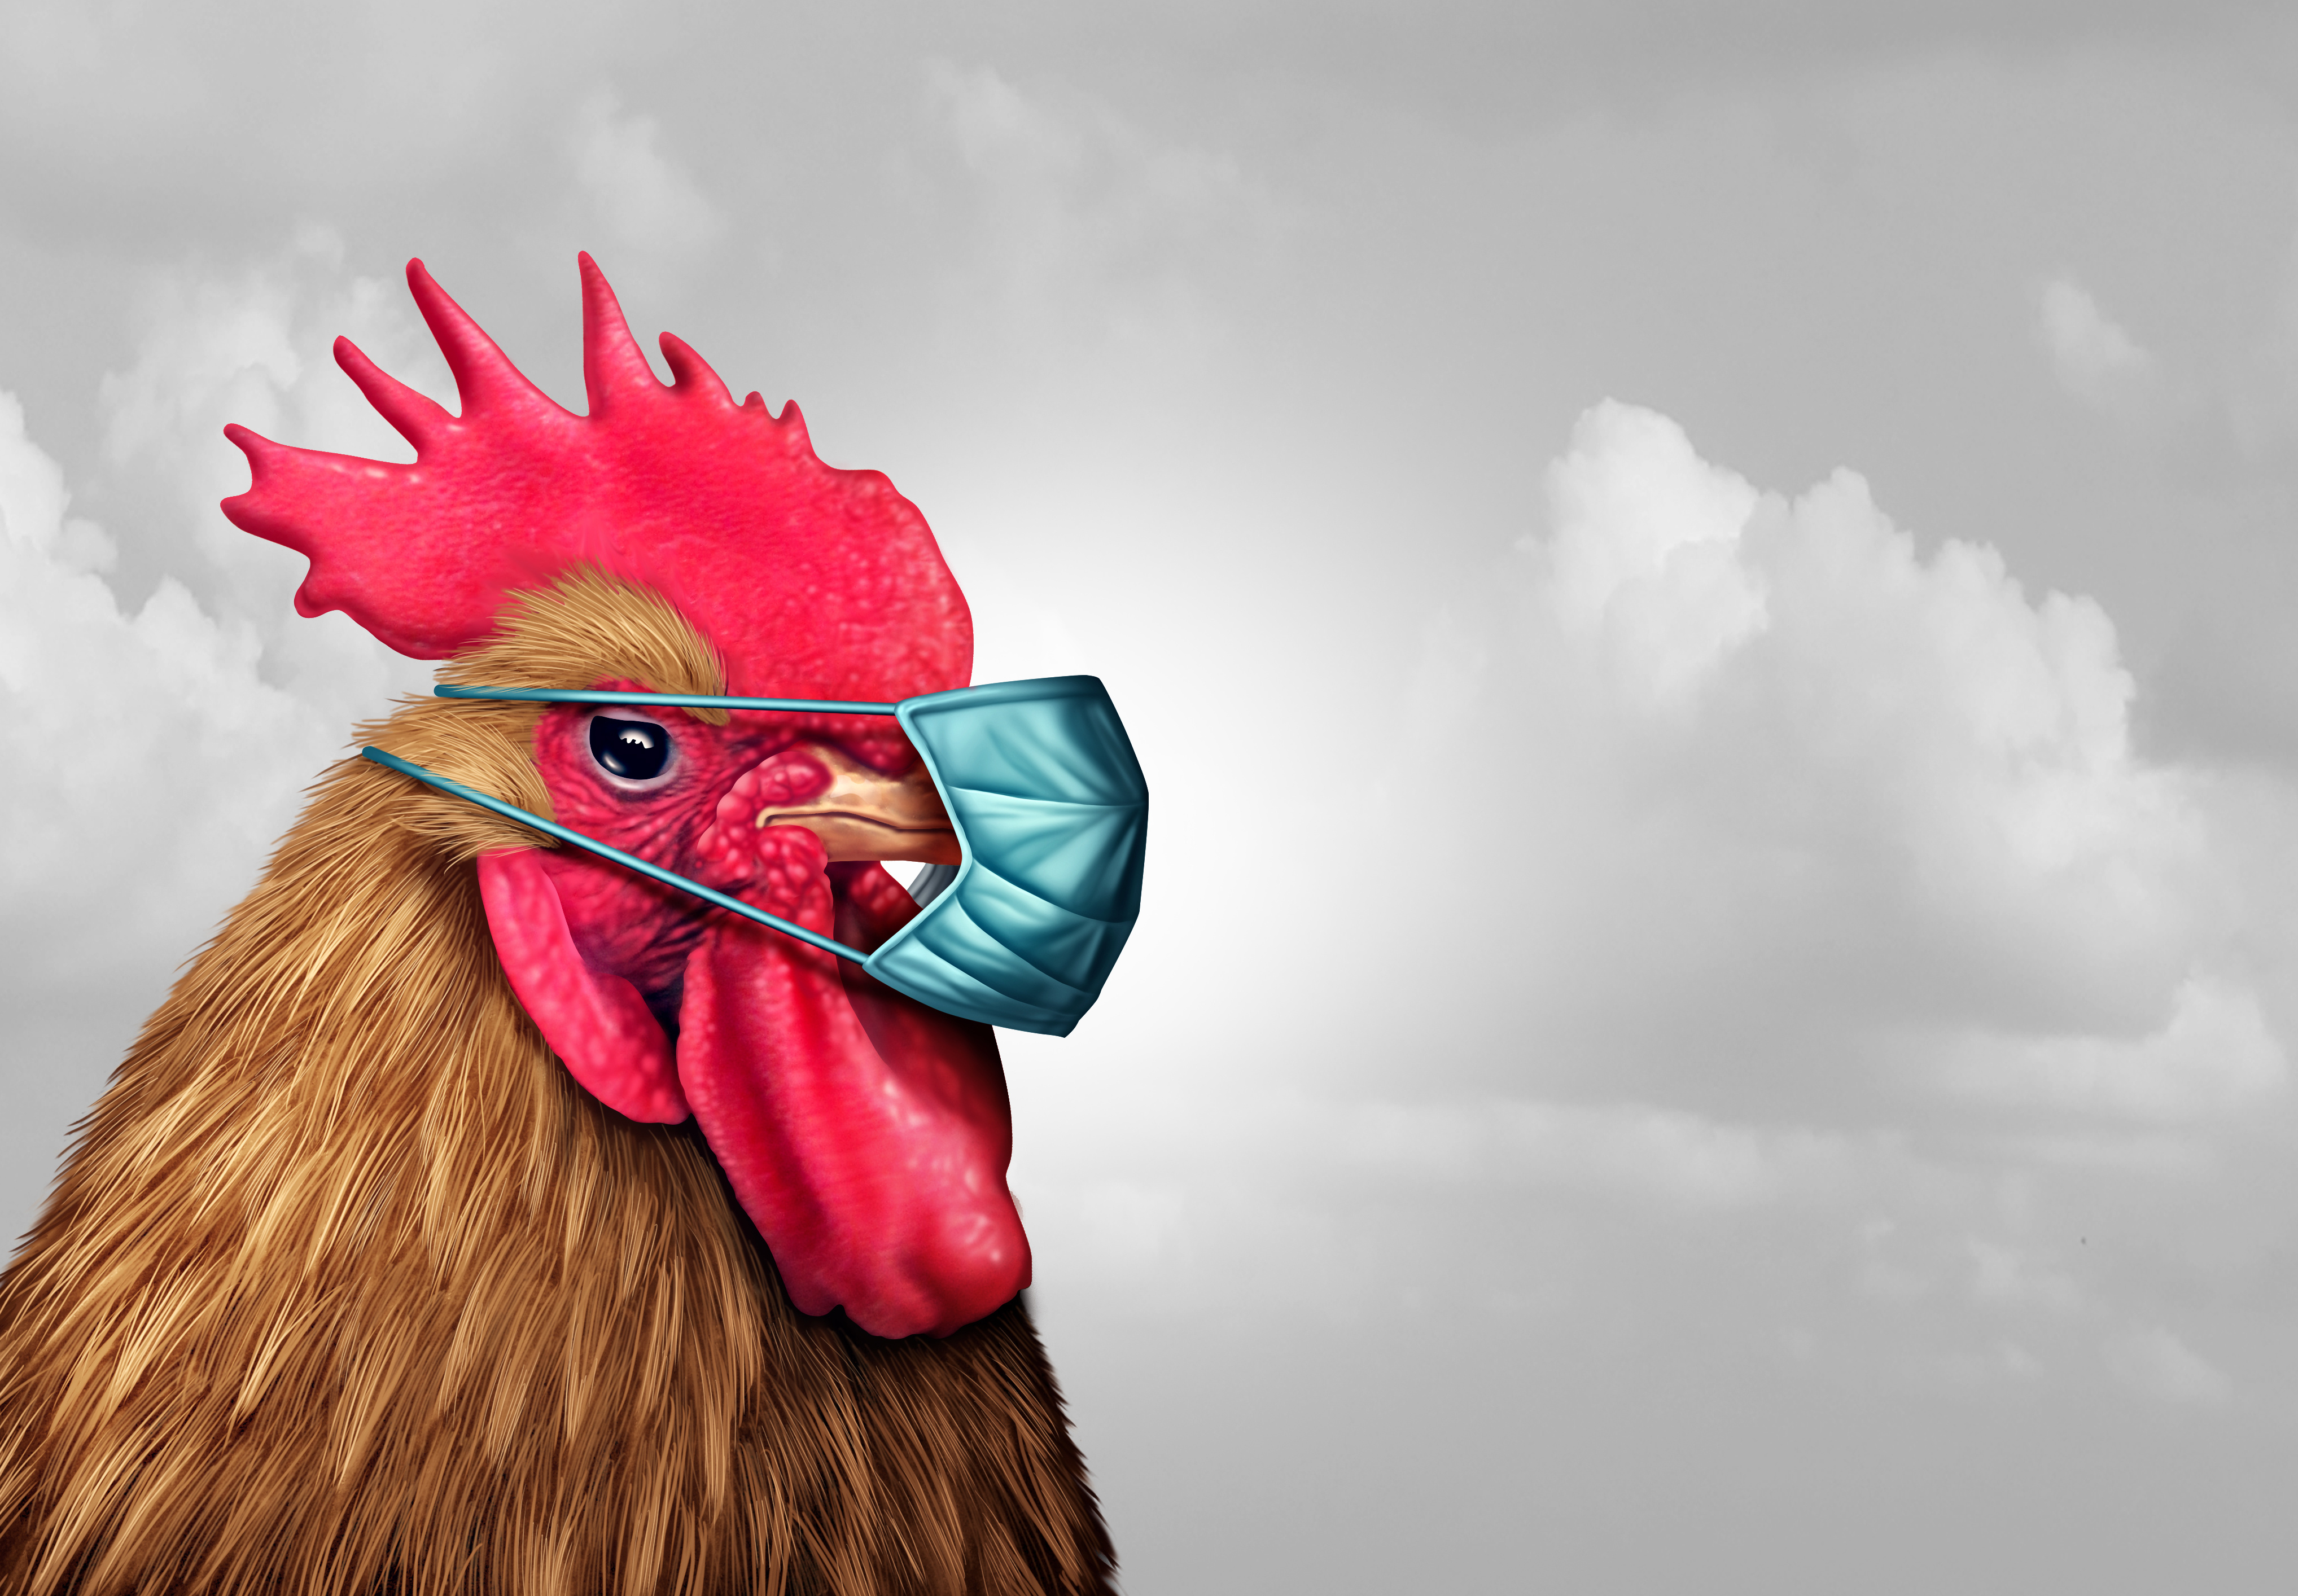 Rooster with face mask on